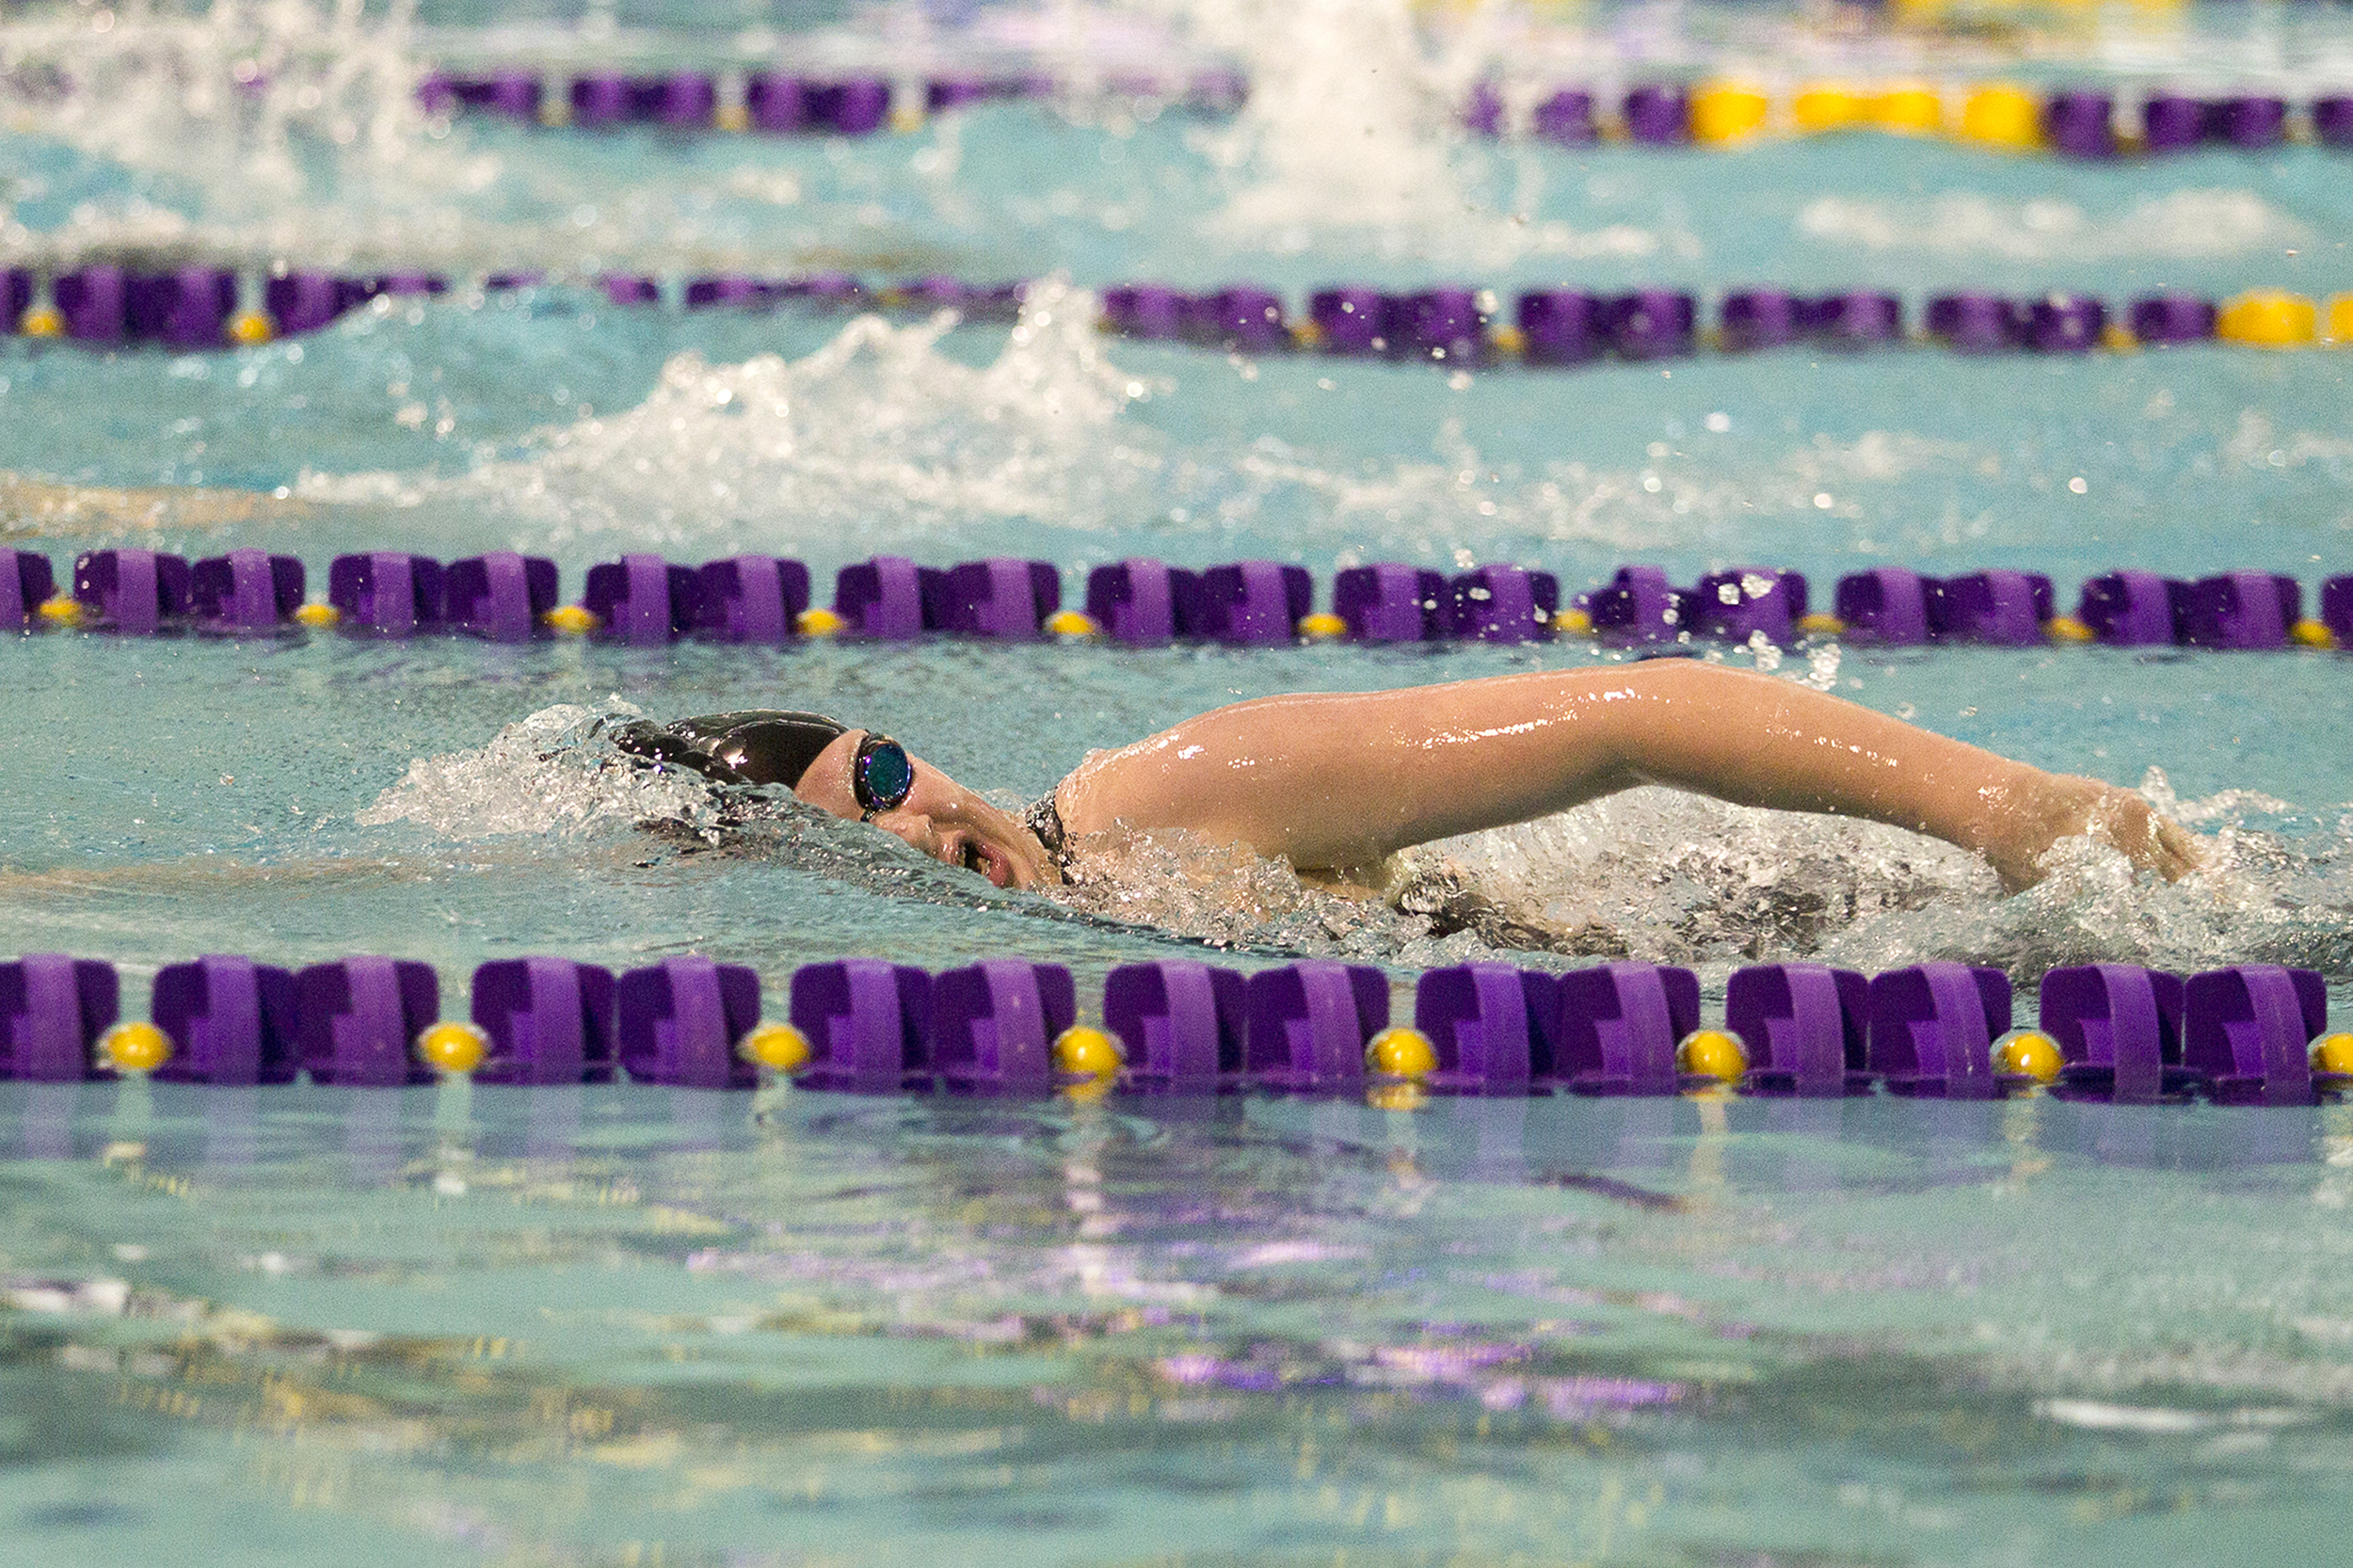 Campbell County High School swimmer McKenna Hauber swims in the second heat of the Girls 200 Yard Freestyle Friday. The state girls swim and dive championships are being held at the Aquatic Center.